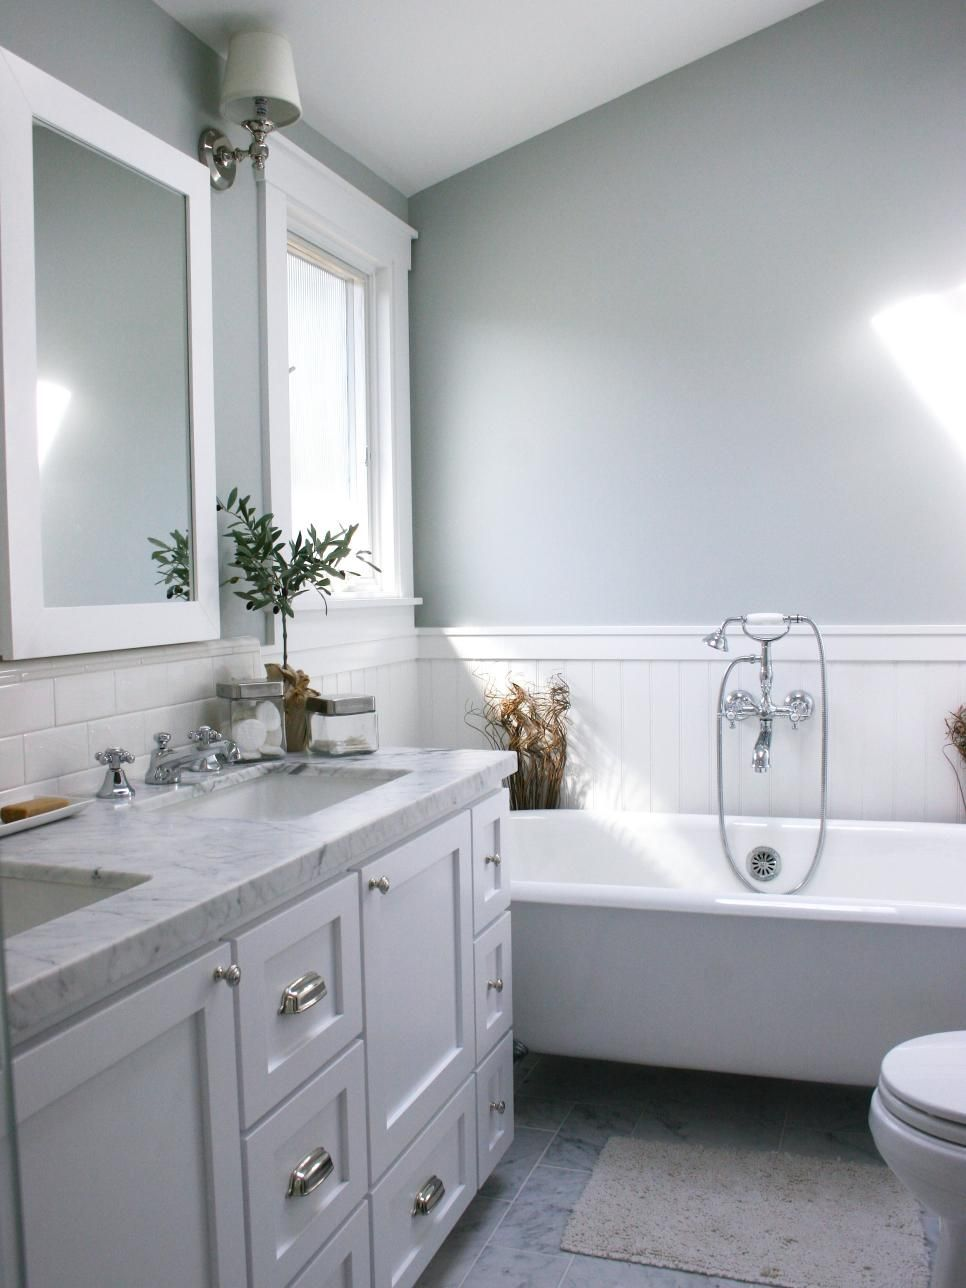 A white bathtub, backsplash tile, mirror and window frame contrast ...